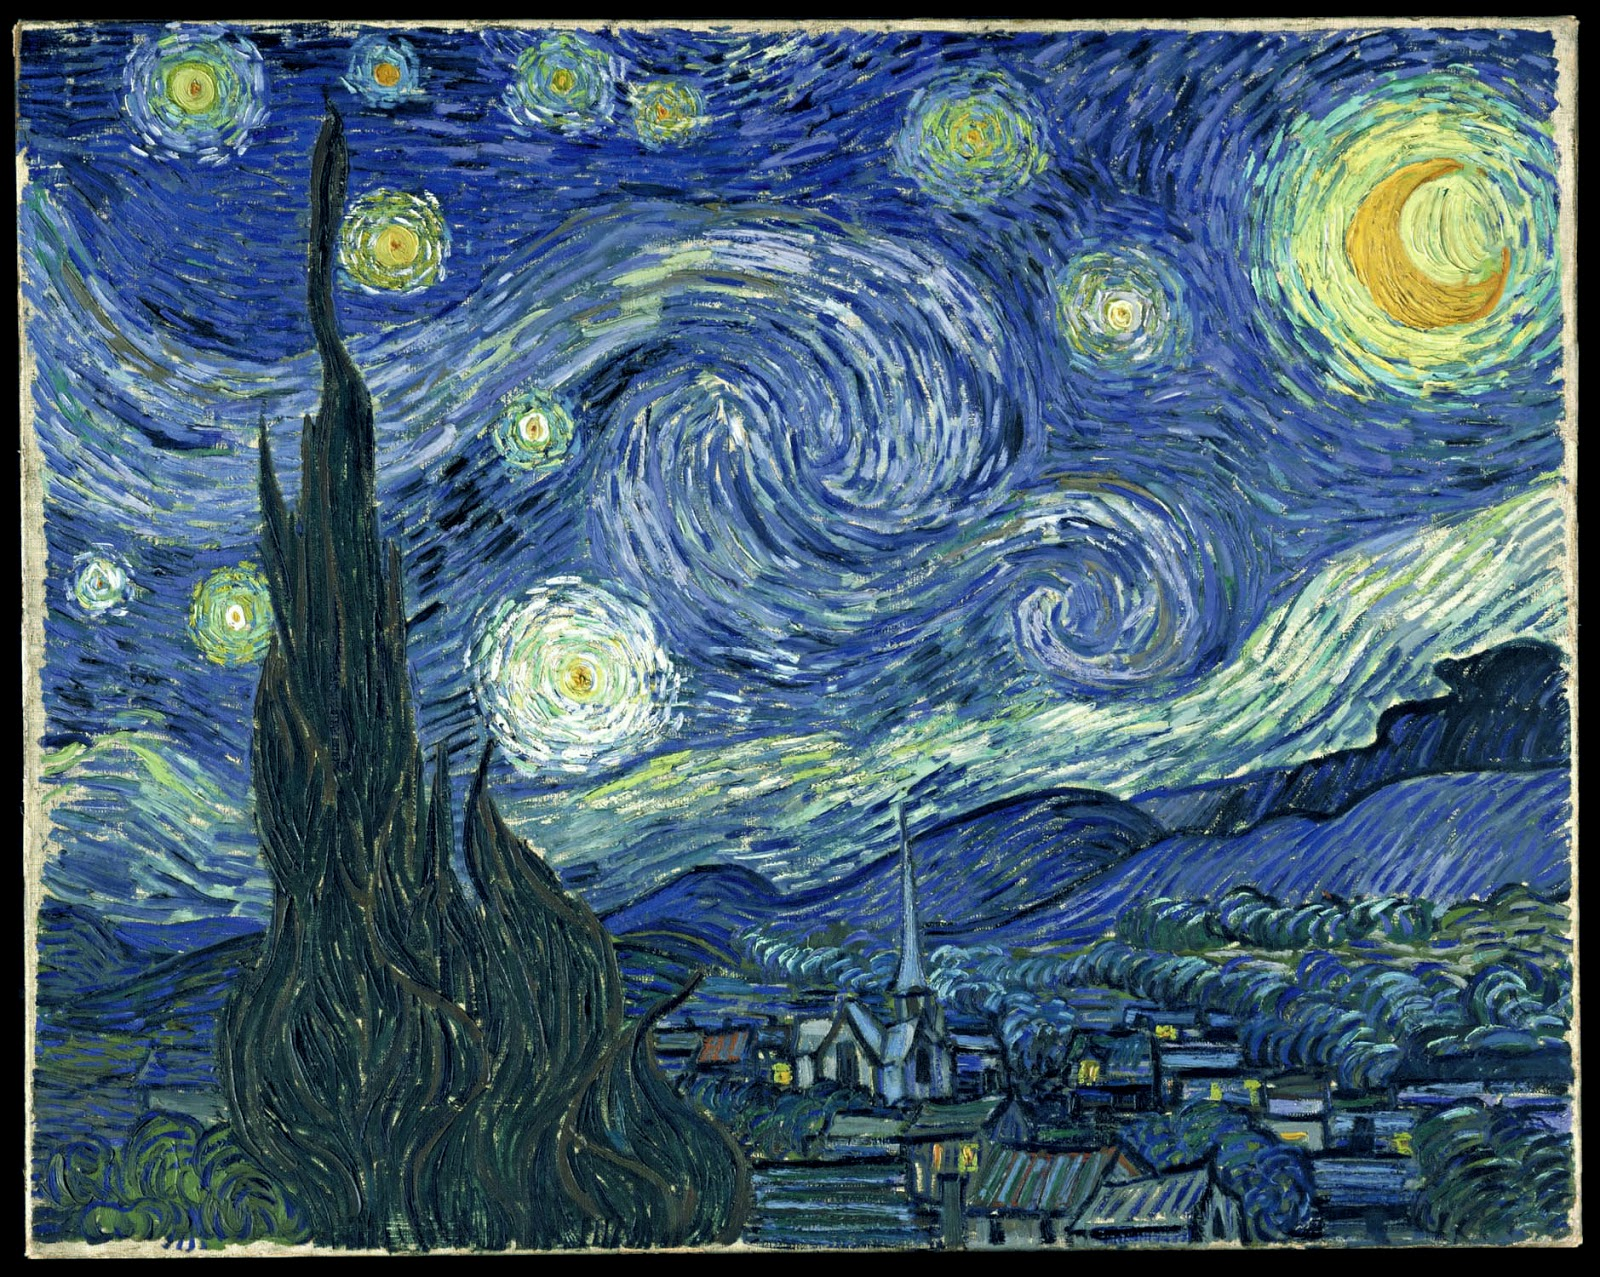 Imagenes De Pinturas De Van Gogh Wallpapers Cuadros Arte New Hd Wallon